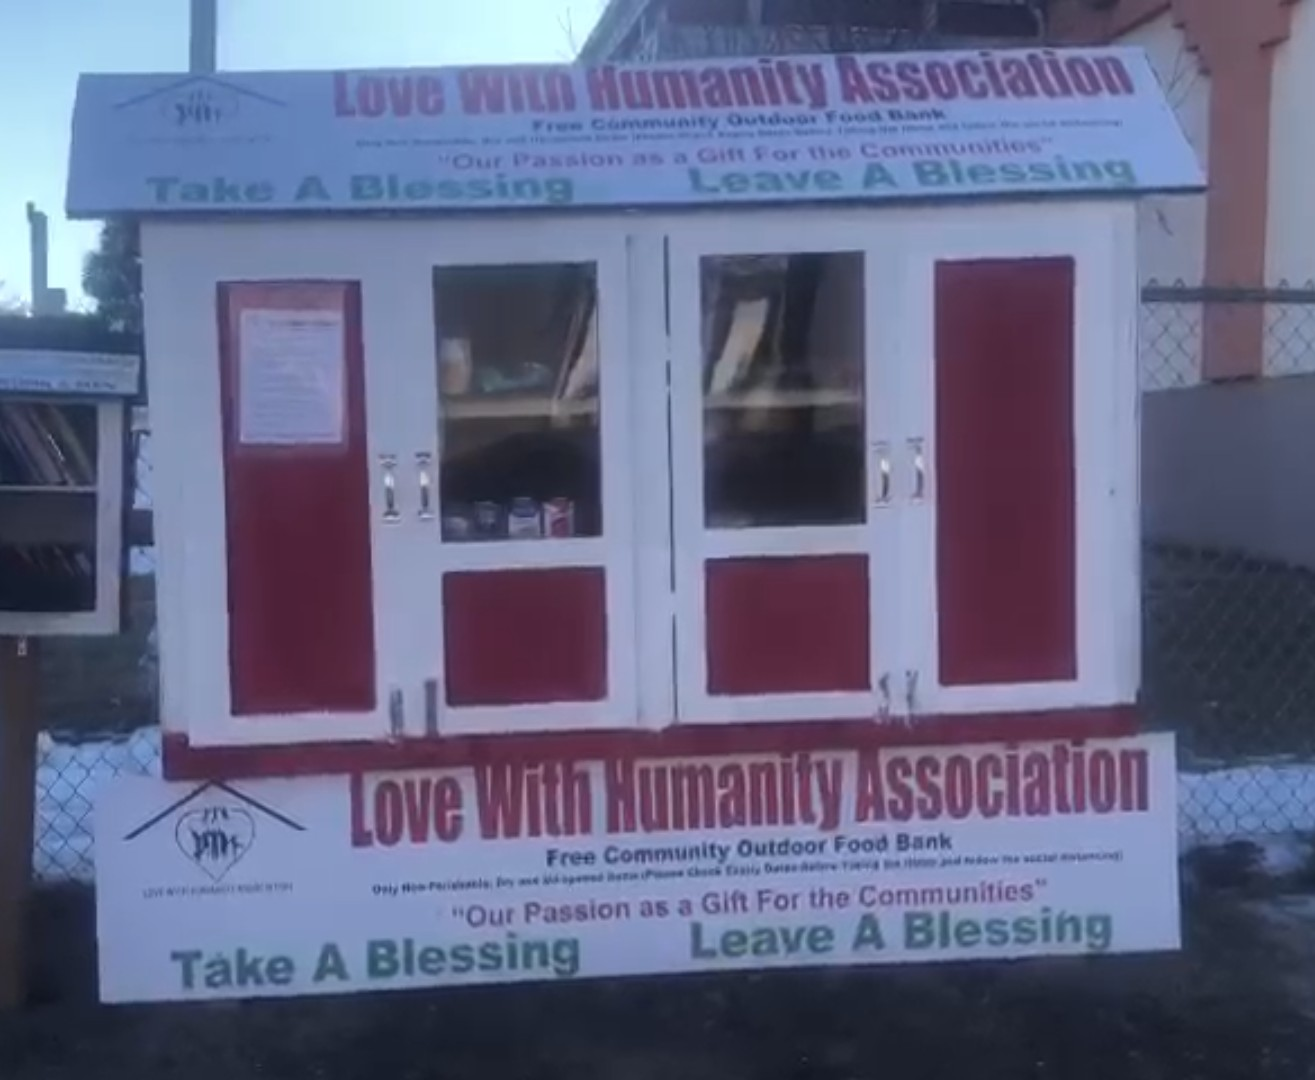 Our 5th Free Community Outdoor Food bank